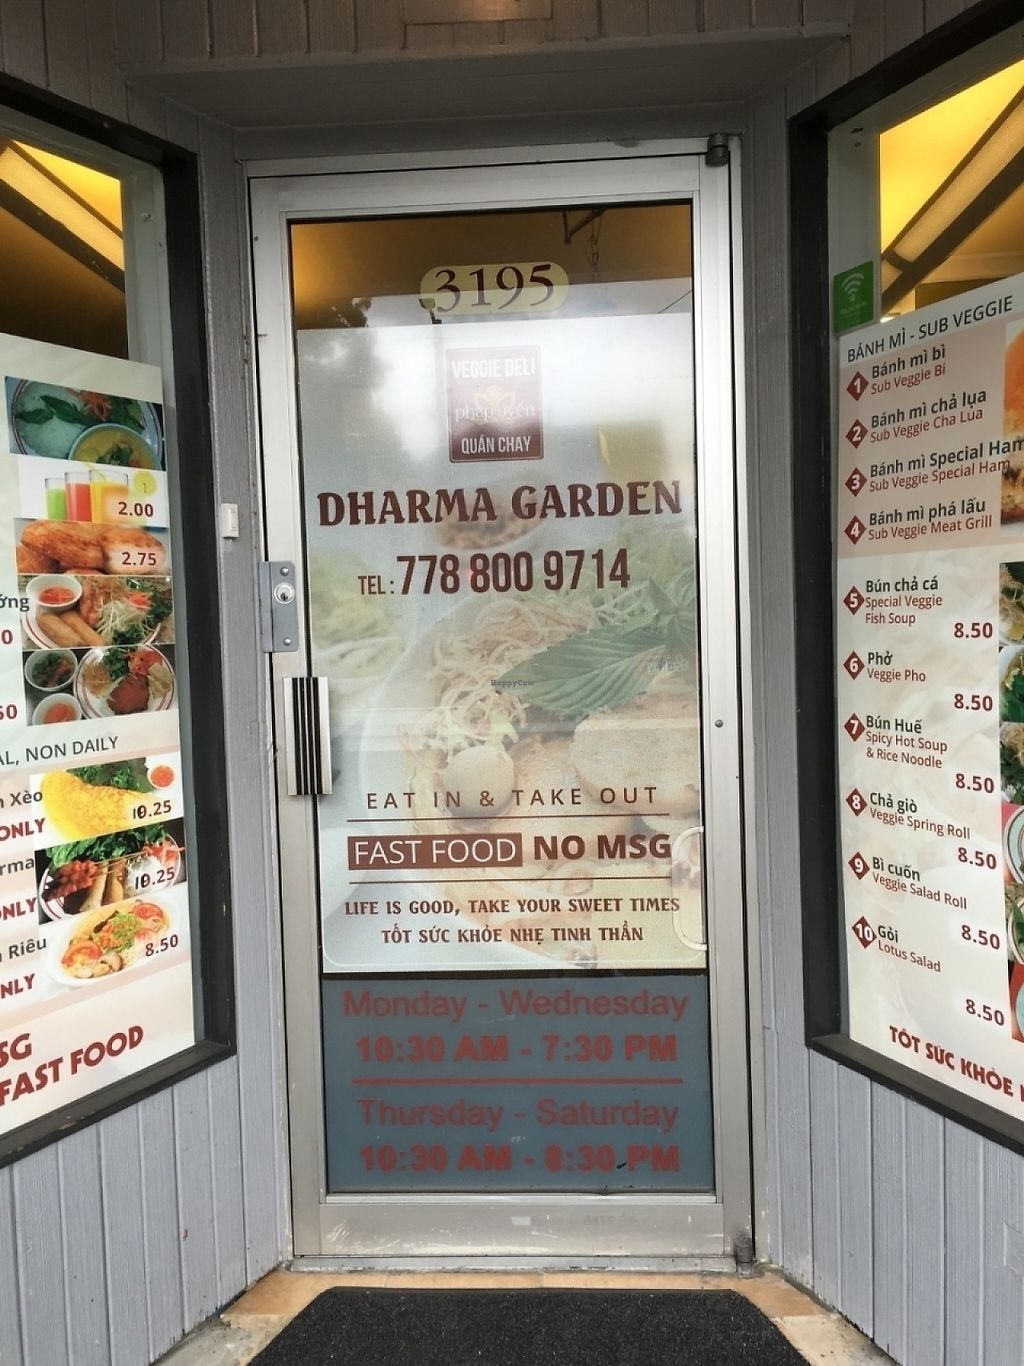 "Photo of Dharma Garden Veggie Deli  by <a href=""/members/profile/vegan%20frog"">vegan frog</a> <br/>Front door <br/> June 24, 2016  - <a href='/contact/abuse/image/66482/230771'>Report</a>"